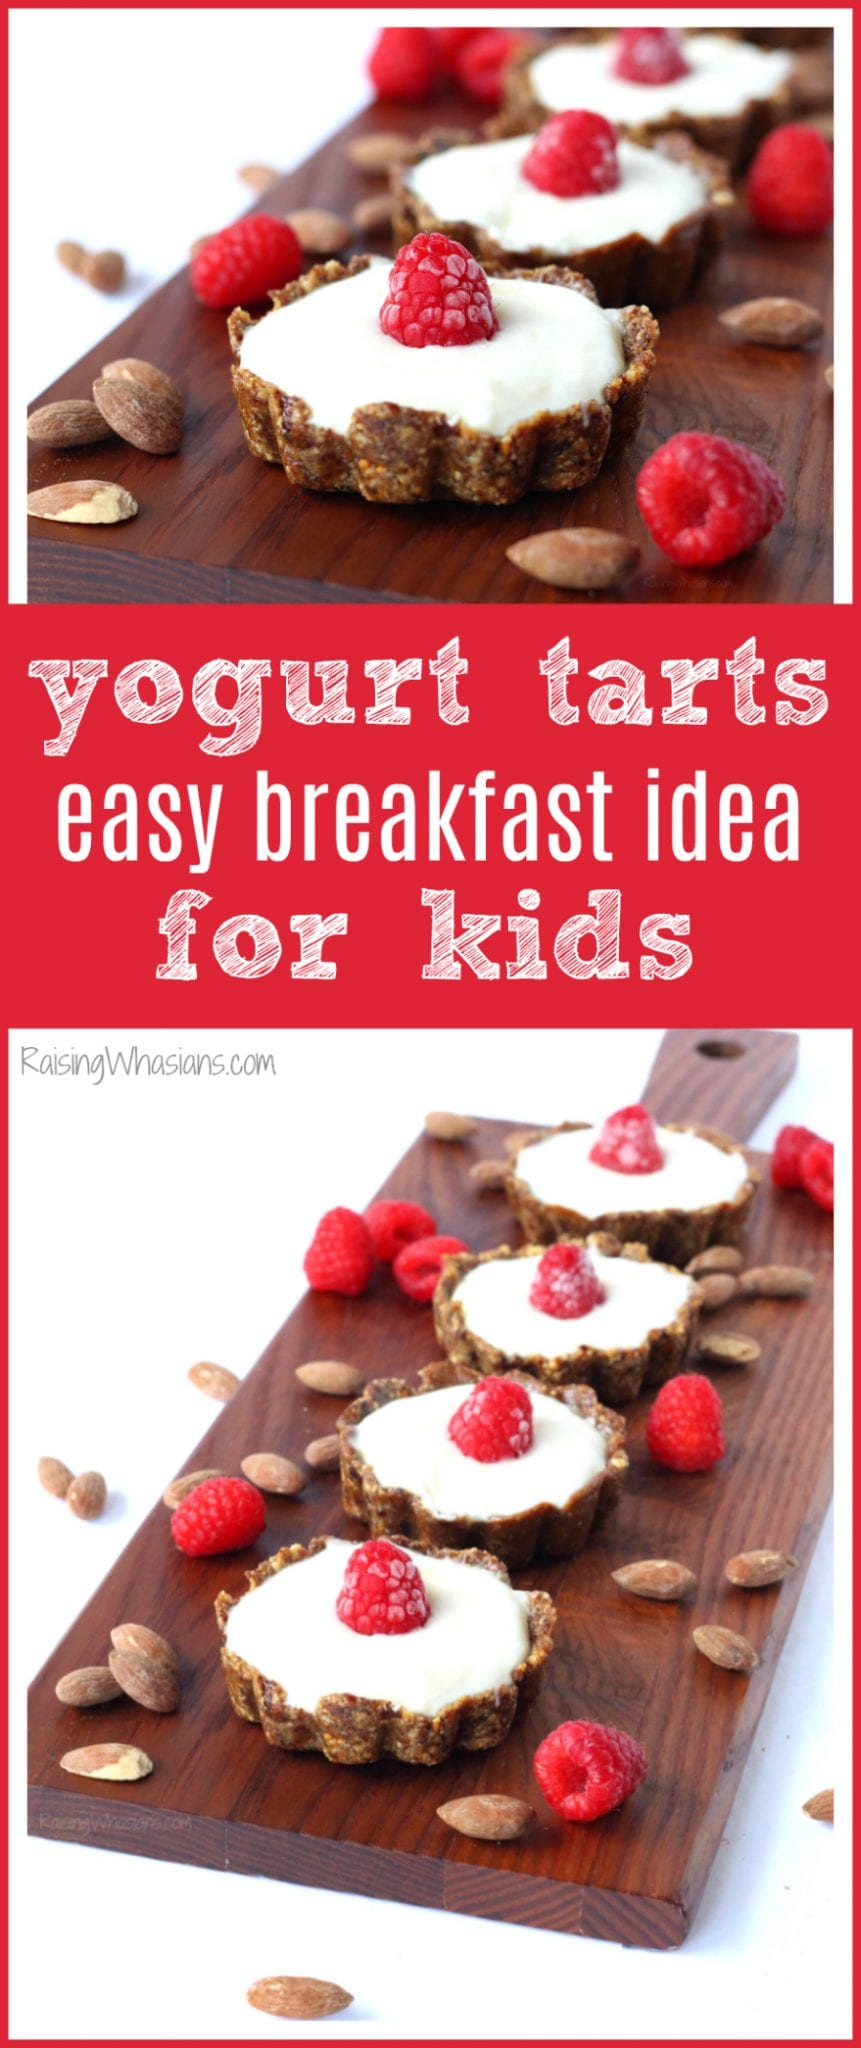 Easy back to school breakfast idea